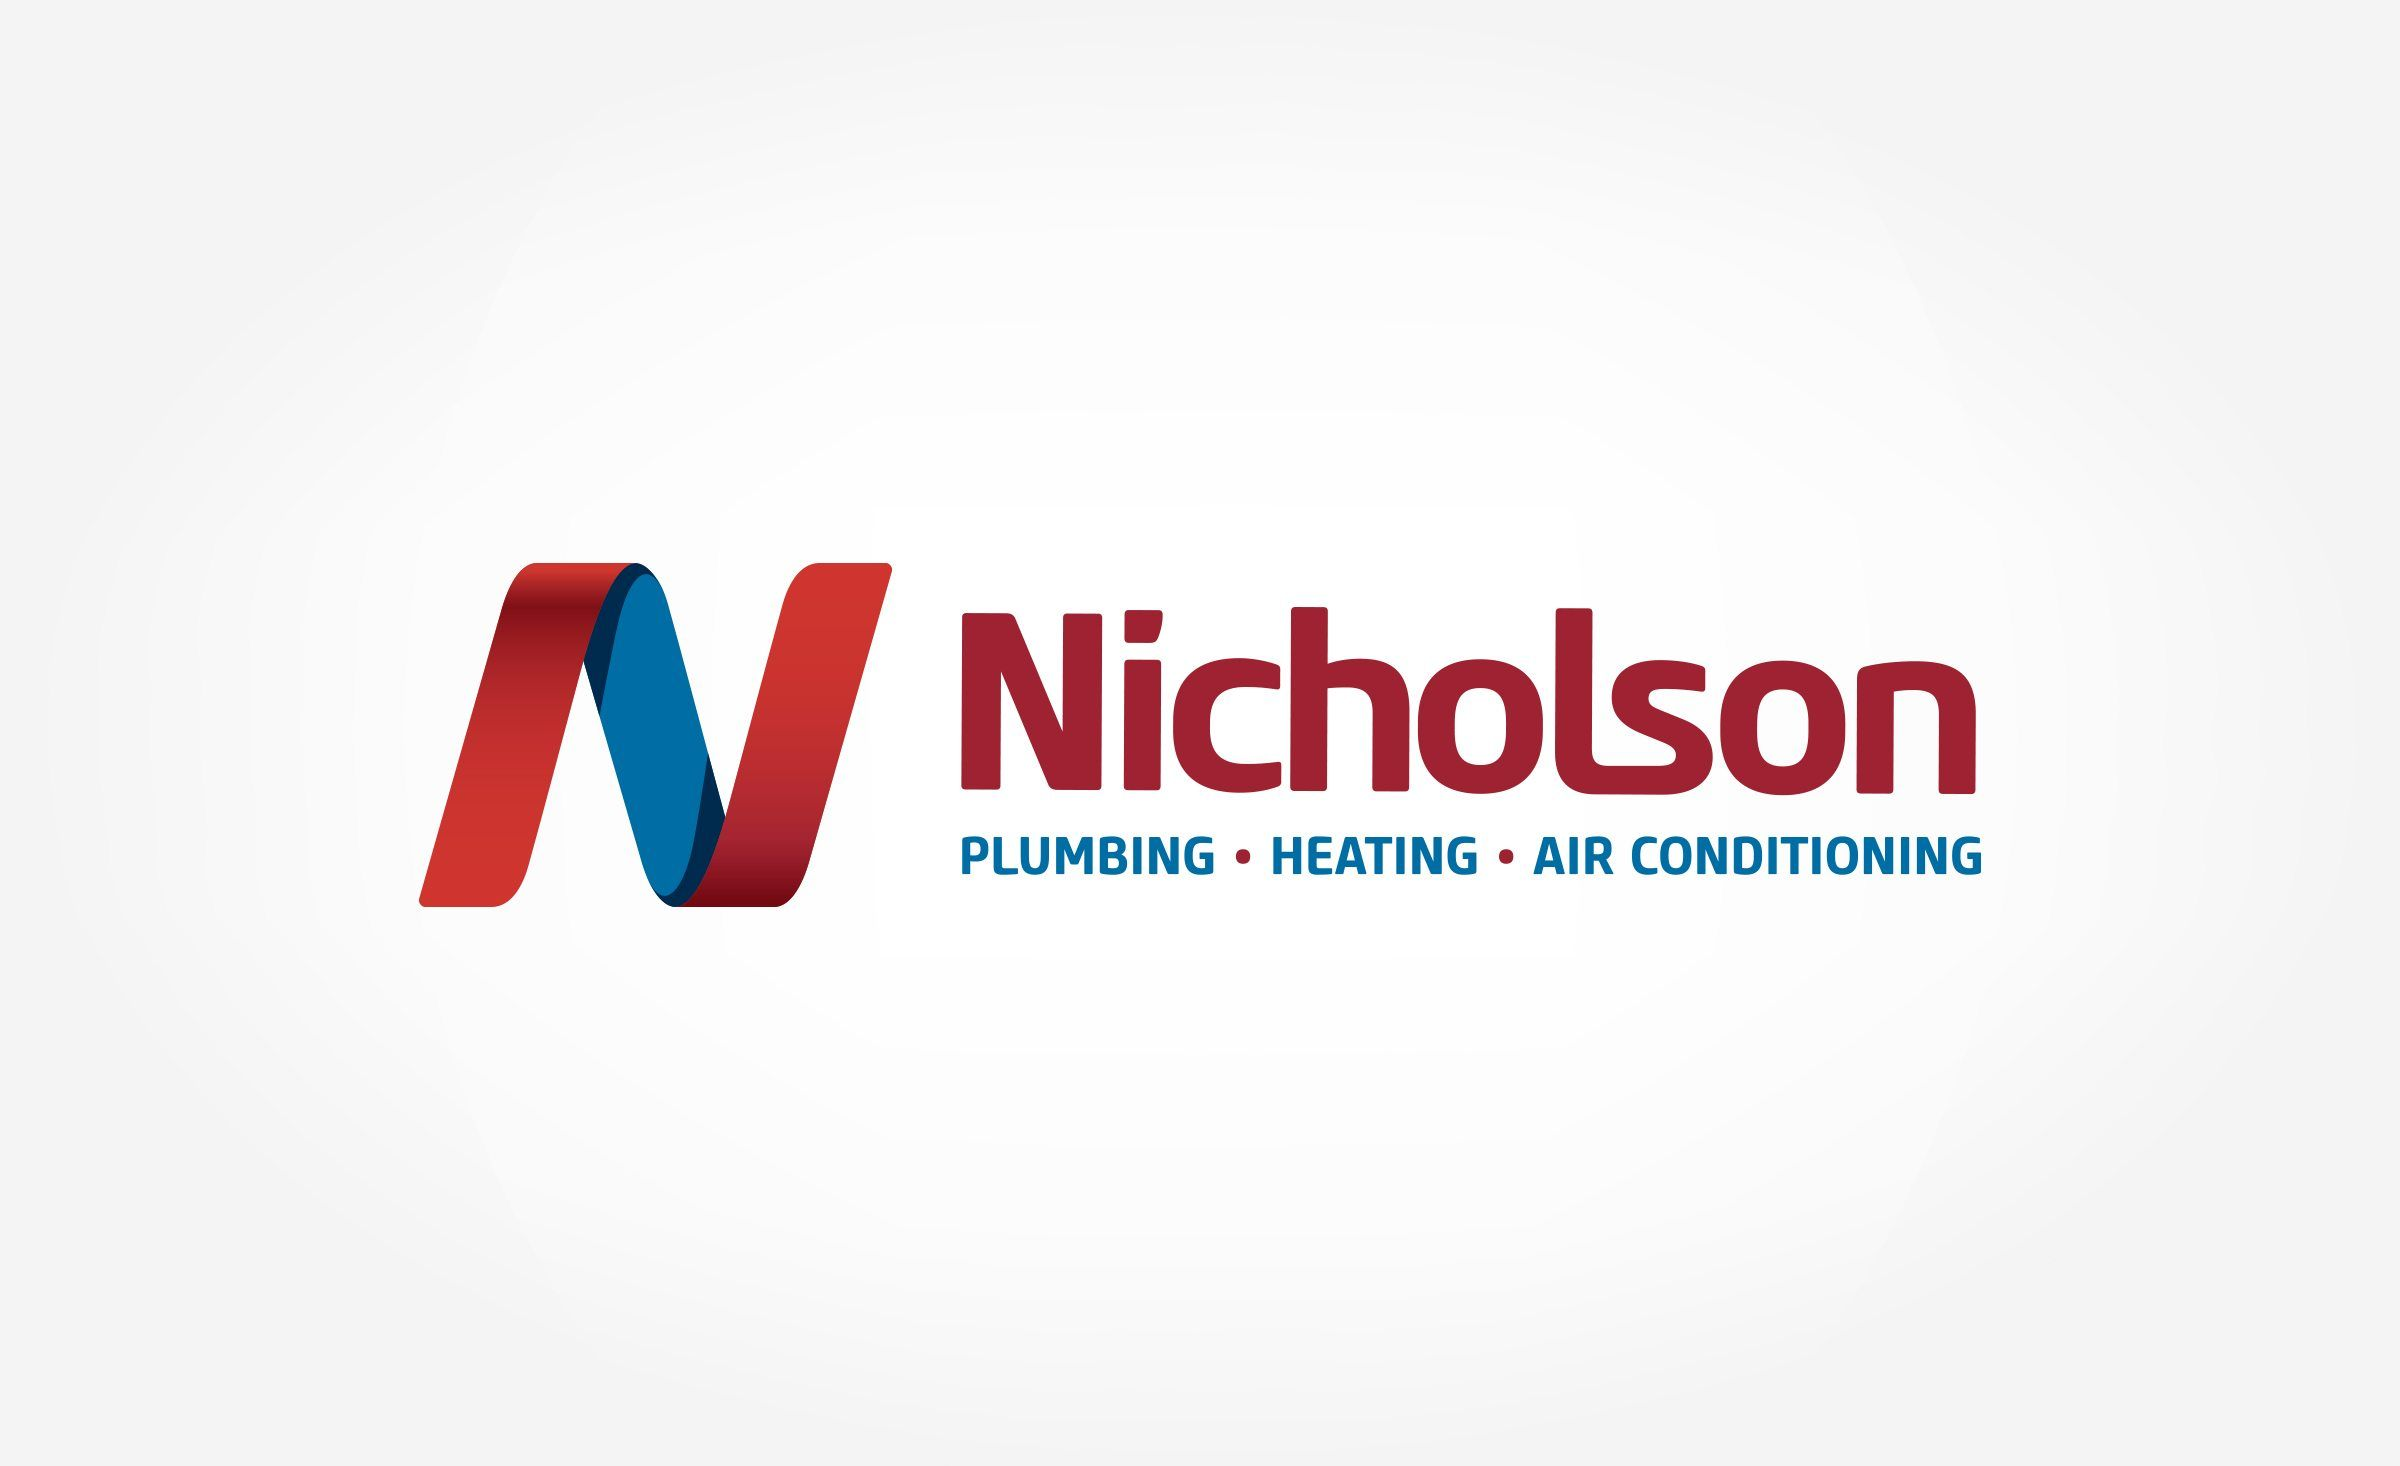 Logo Design For Nicholson Plumbing Heating Air Conditioning In Massachusetts Http Graphicd Signs Com Wor Plumbing Logo Design Plumbing Logo Plumbers Logo